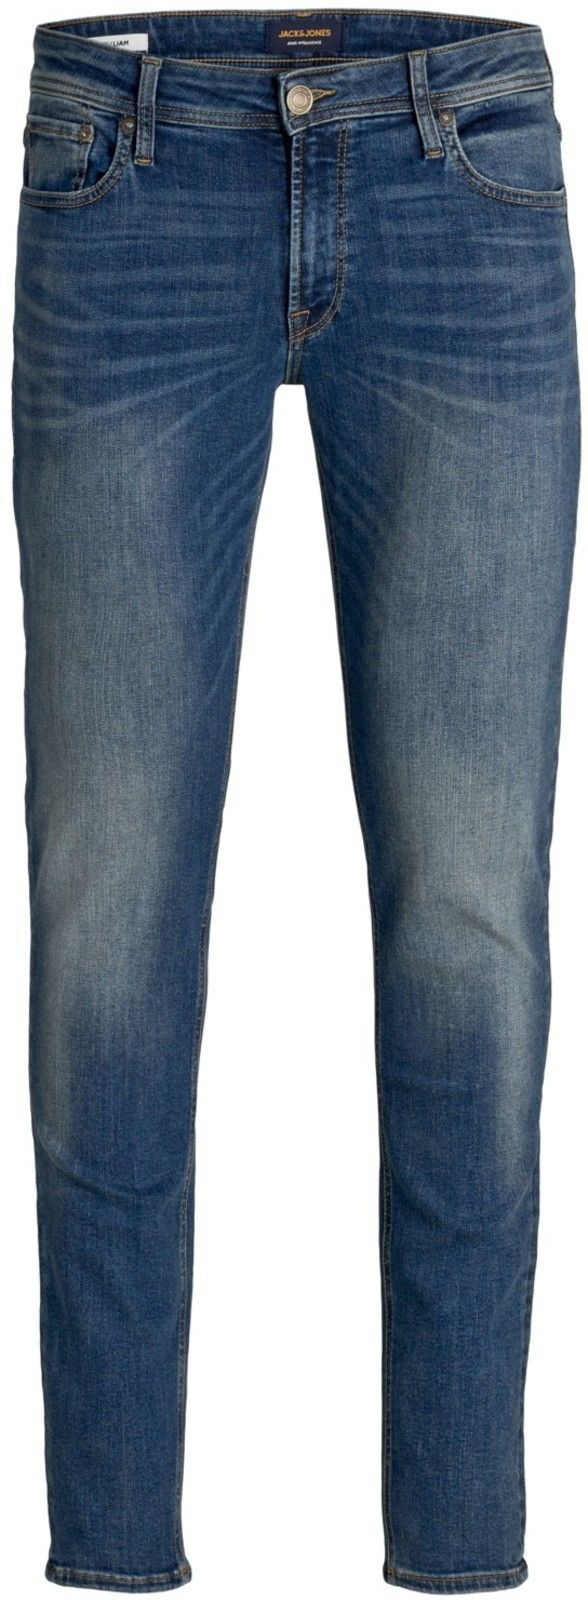 Jack & Jones Tim Original Slim Fit Denim Jeans Navy